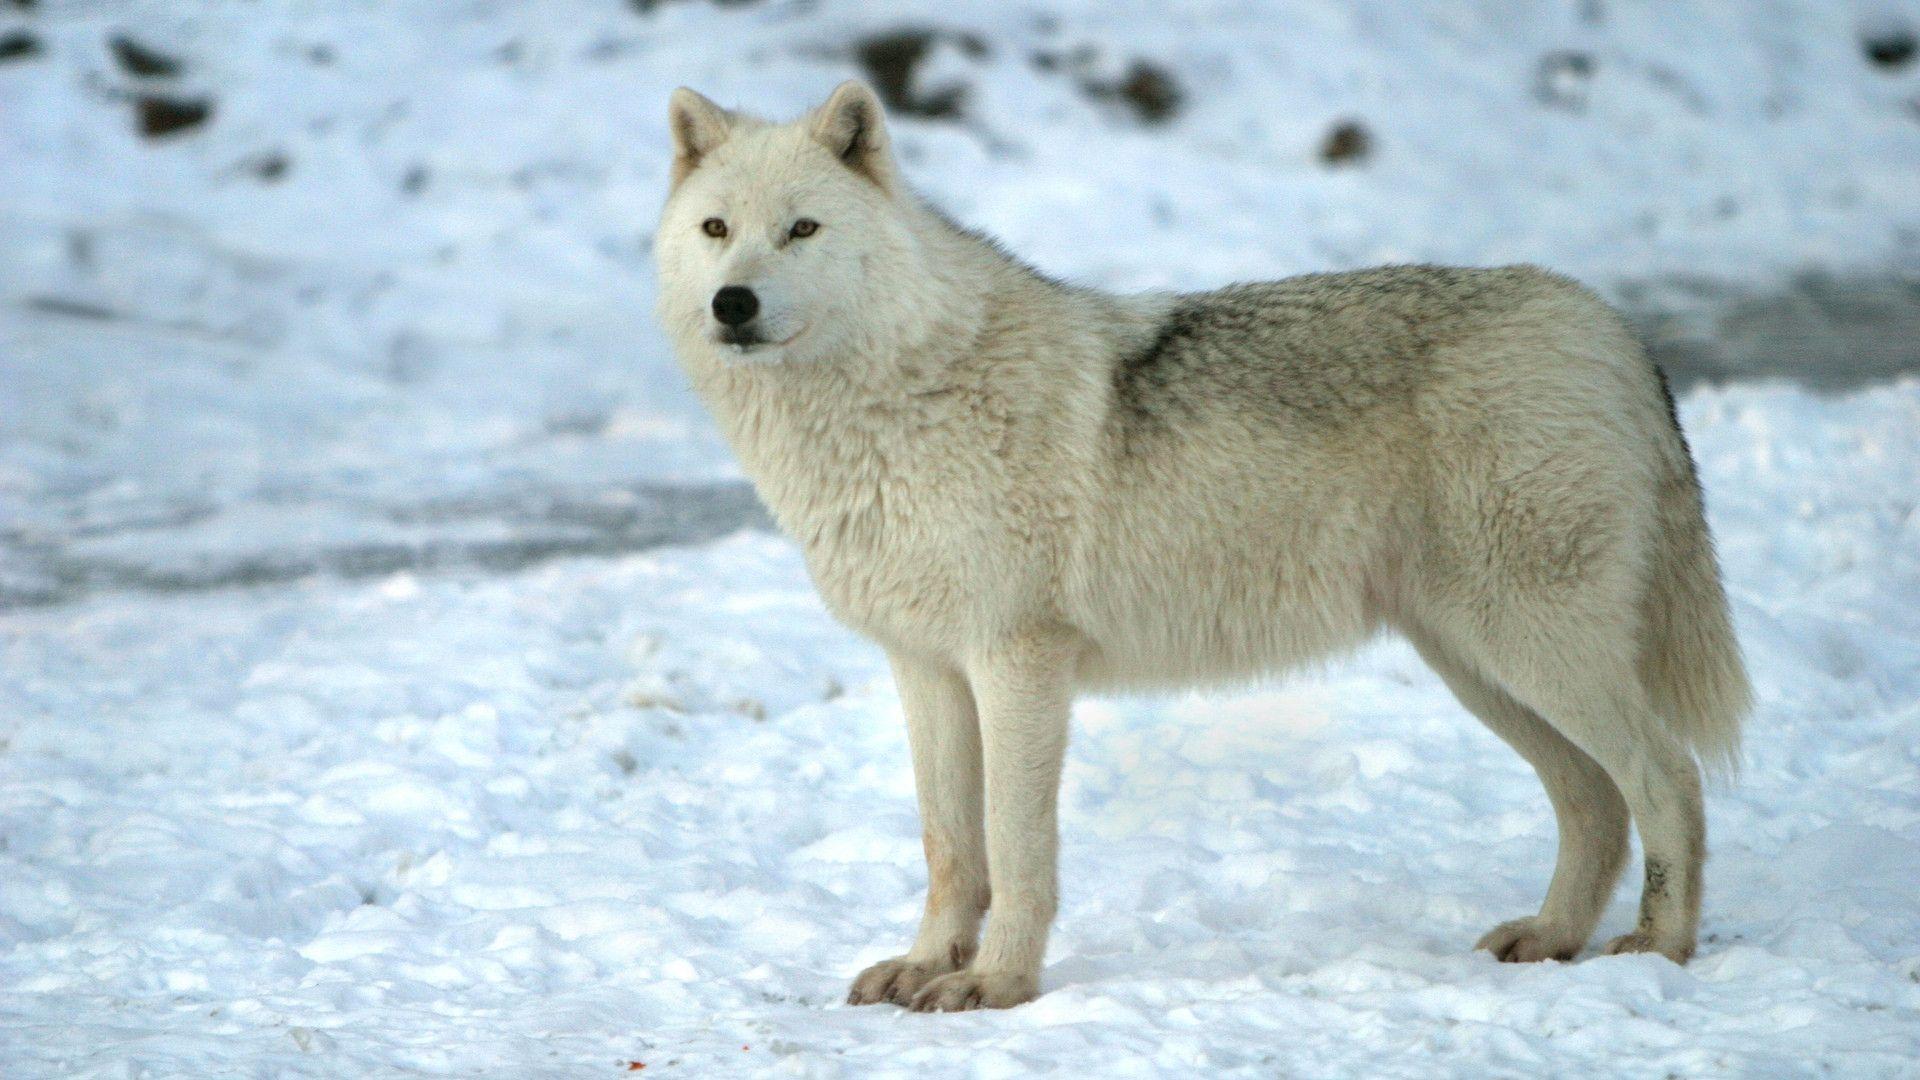 Wolf Wallpapers 1920x1080, wallpaper, Wolf Wallpapers 1920x1080 hd